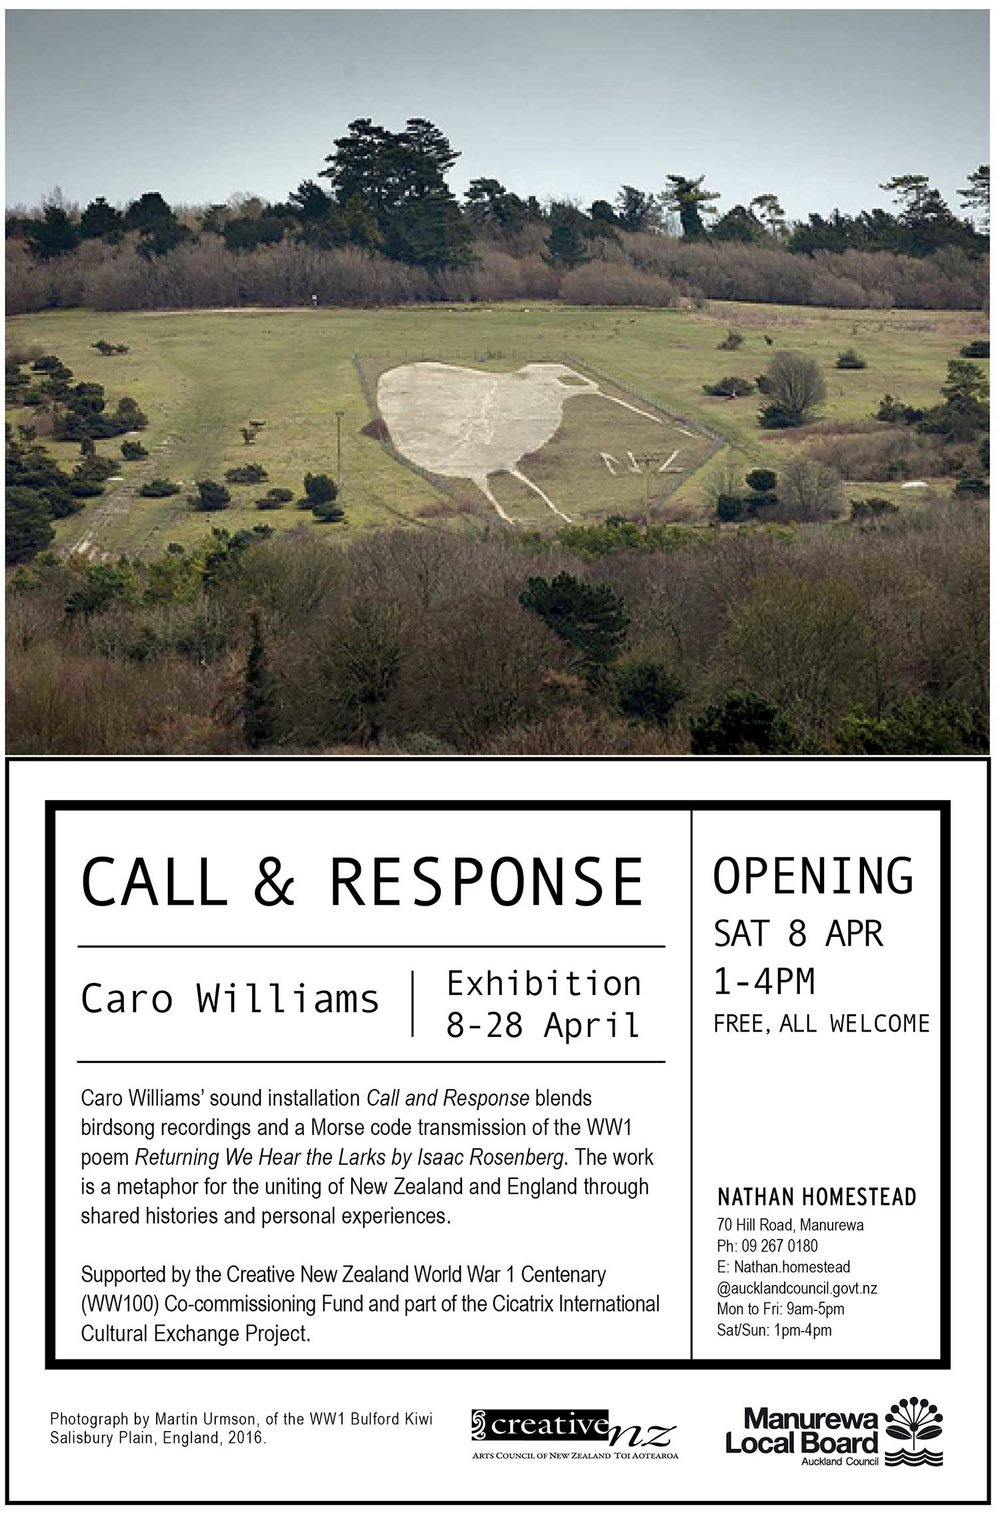 Invitation to the Opening of Call and Response at the Nathan Homestead